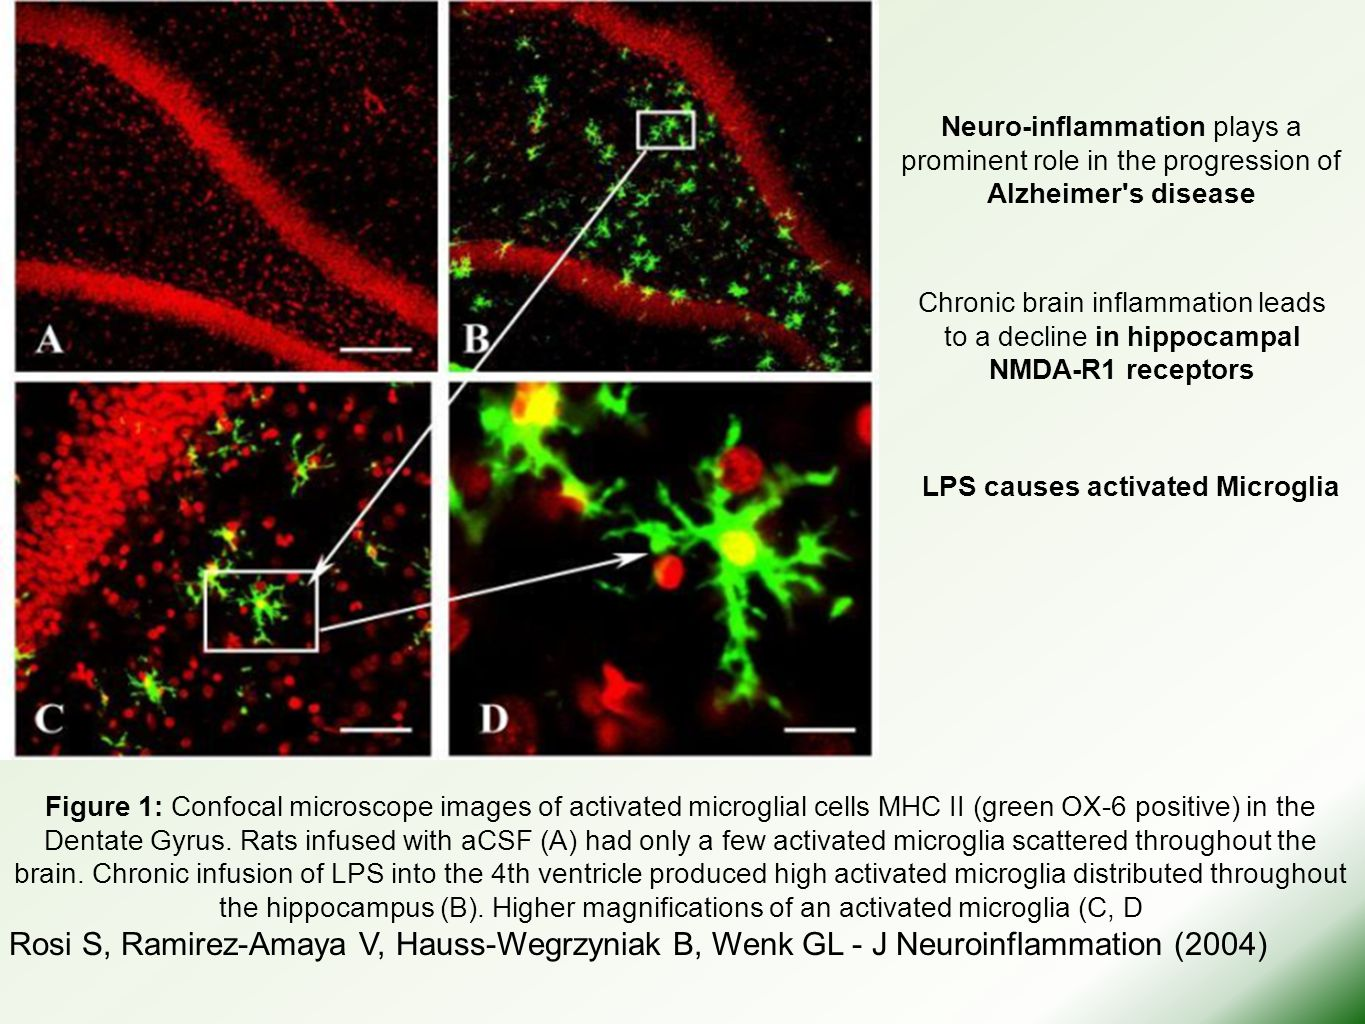 In summary, the systemic injection of LPS resulted in the reactivation of Collagen-induced arthritis in mice that was associated with the increased production of anti-CII IgG and IgG2a antibodies as well as the enhanced secretion of cytokines including IL-12, IFN- γ, IL-1β, and TNF-α.